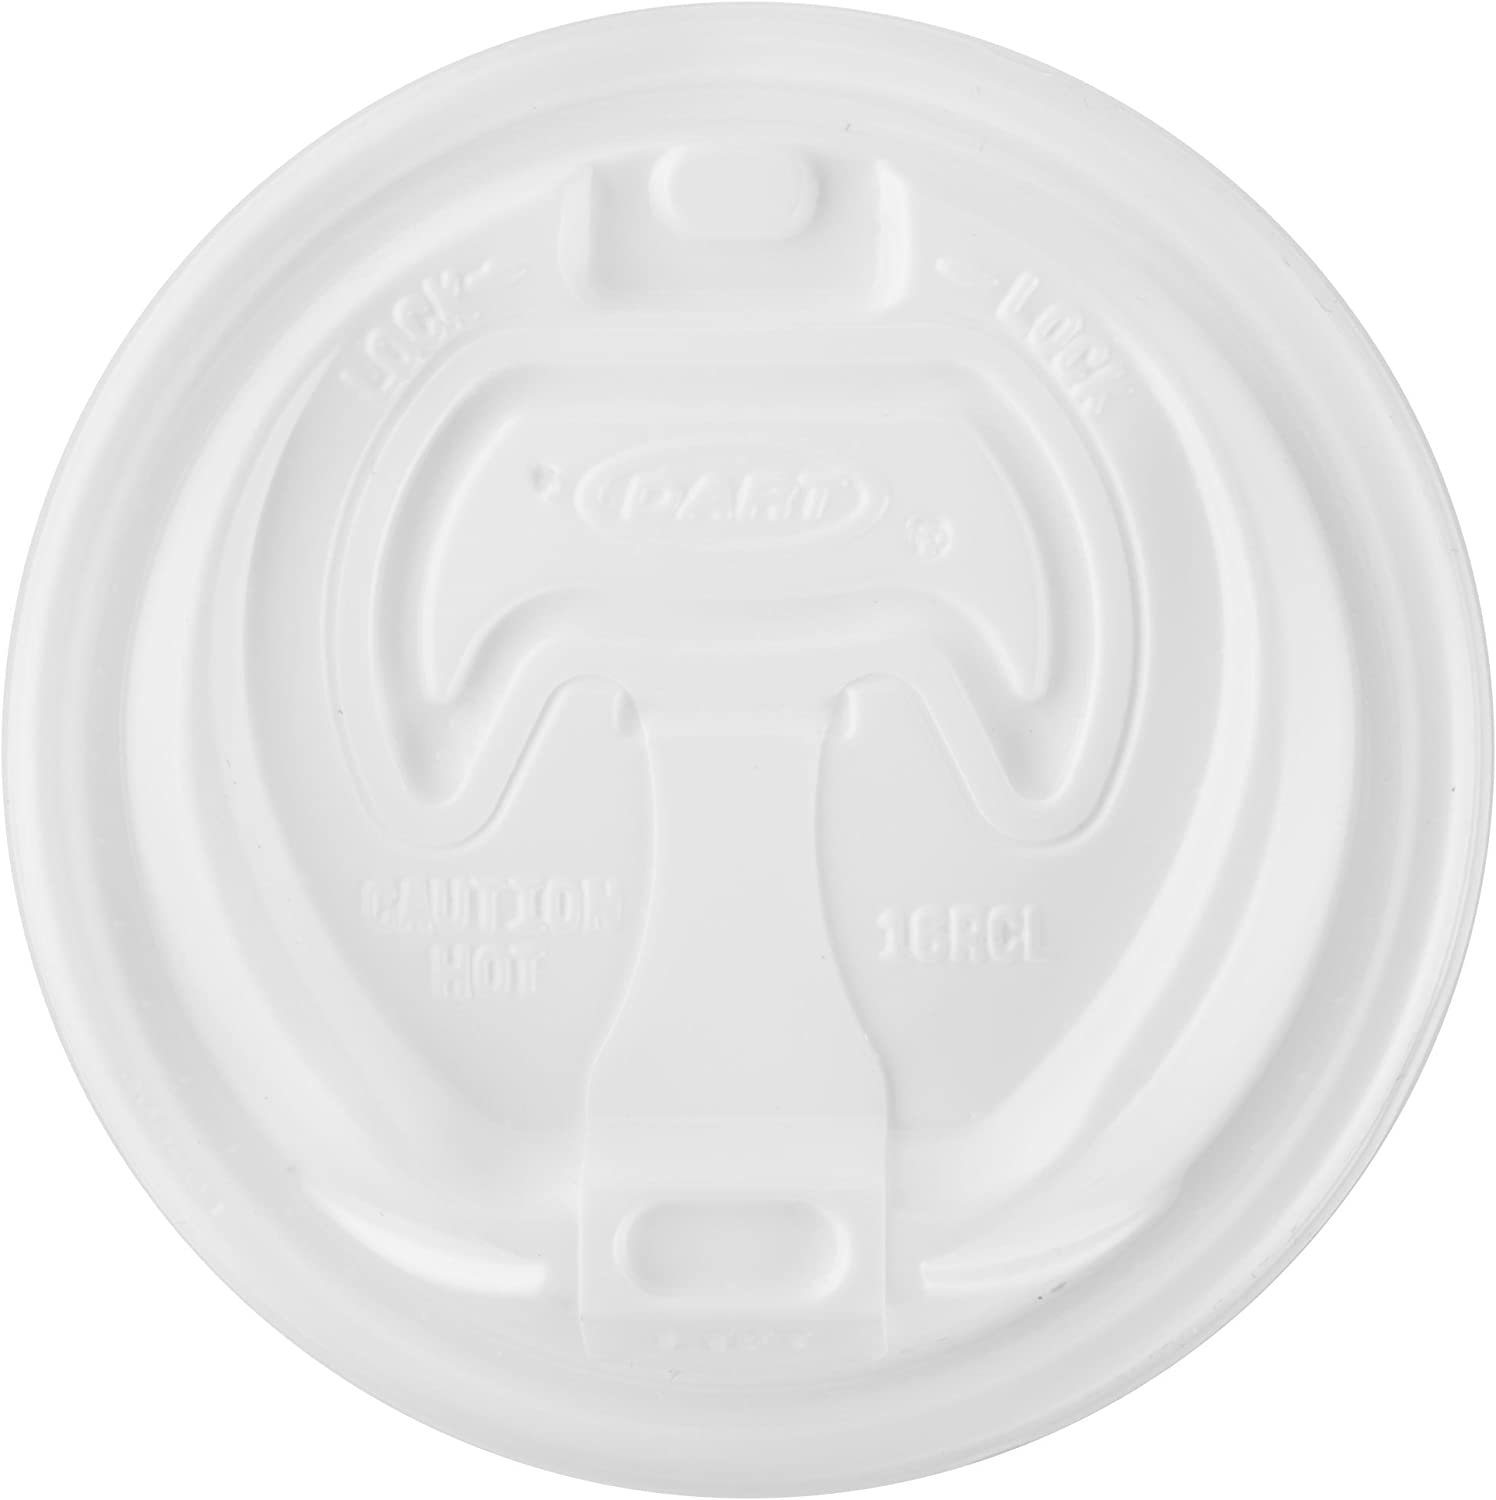 DART 16RCLW-1 Optima Reclosable Lid for Foam Cups and Containers, White, 100 Piece